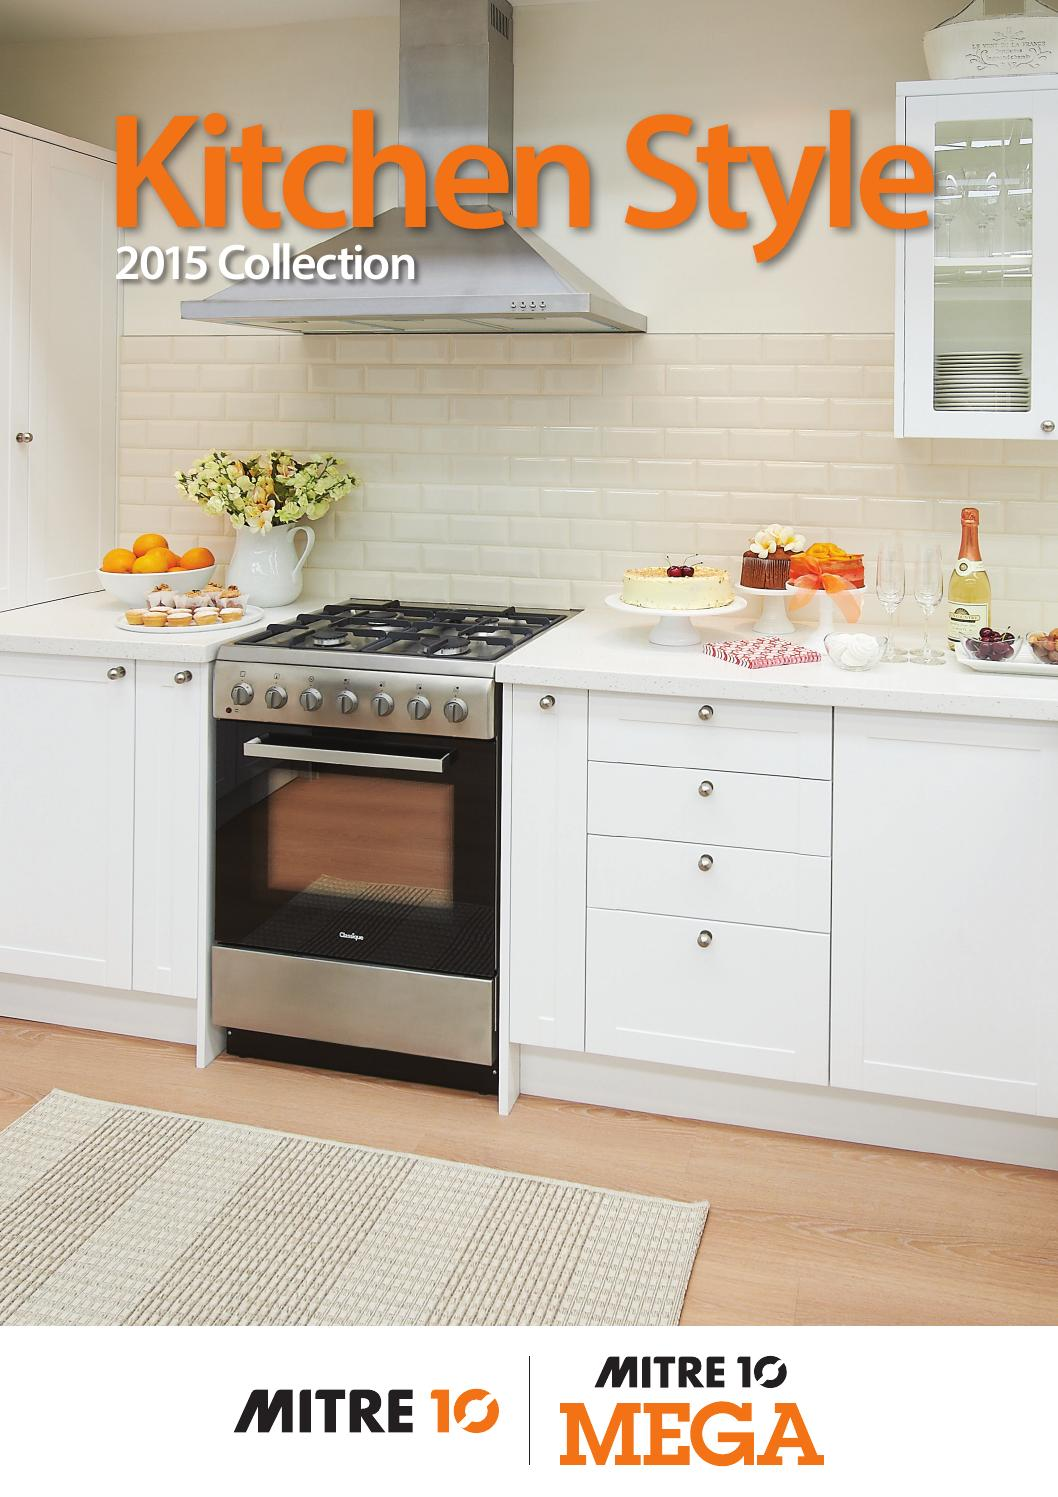 kitchen style 2015 collection by draftfcb issuu get the look renovate your whole kitchen mitre 10